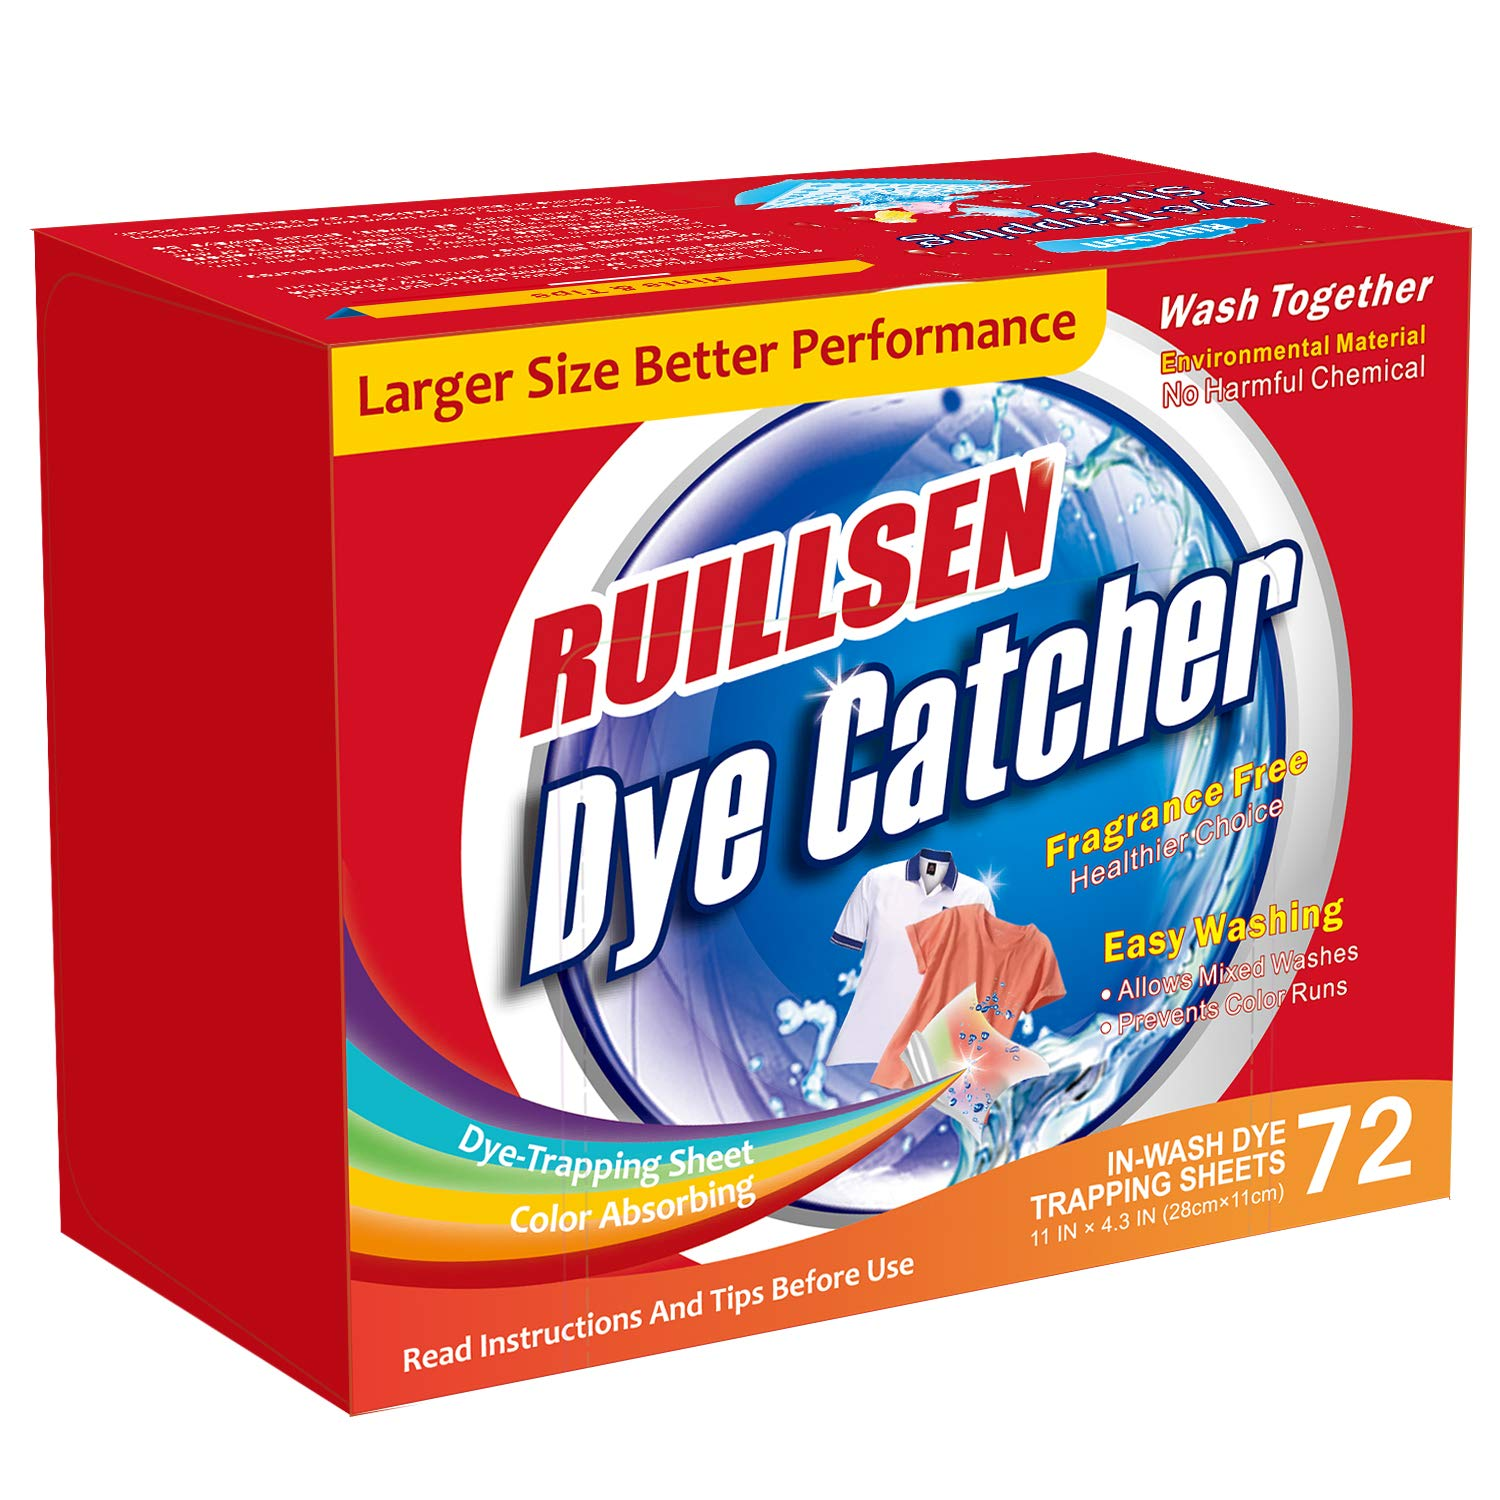 RUILLSEN Color Catcher, Dye Trapping Sheet Dirt Grabber Stain Remover Sheets for Laundry,Dye Catcher In-Wash 72-Count Sheets at School/Single-Apartment/Small Families